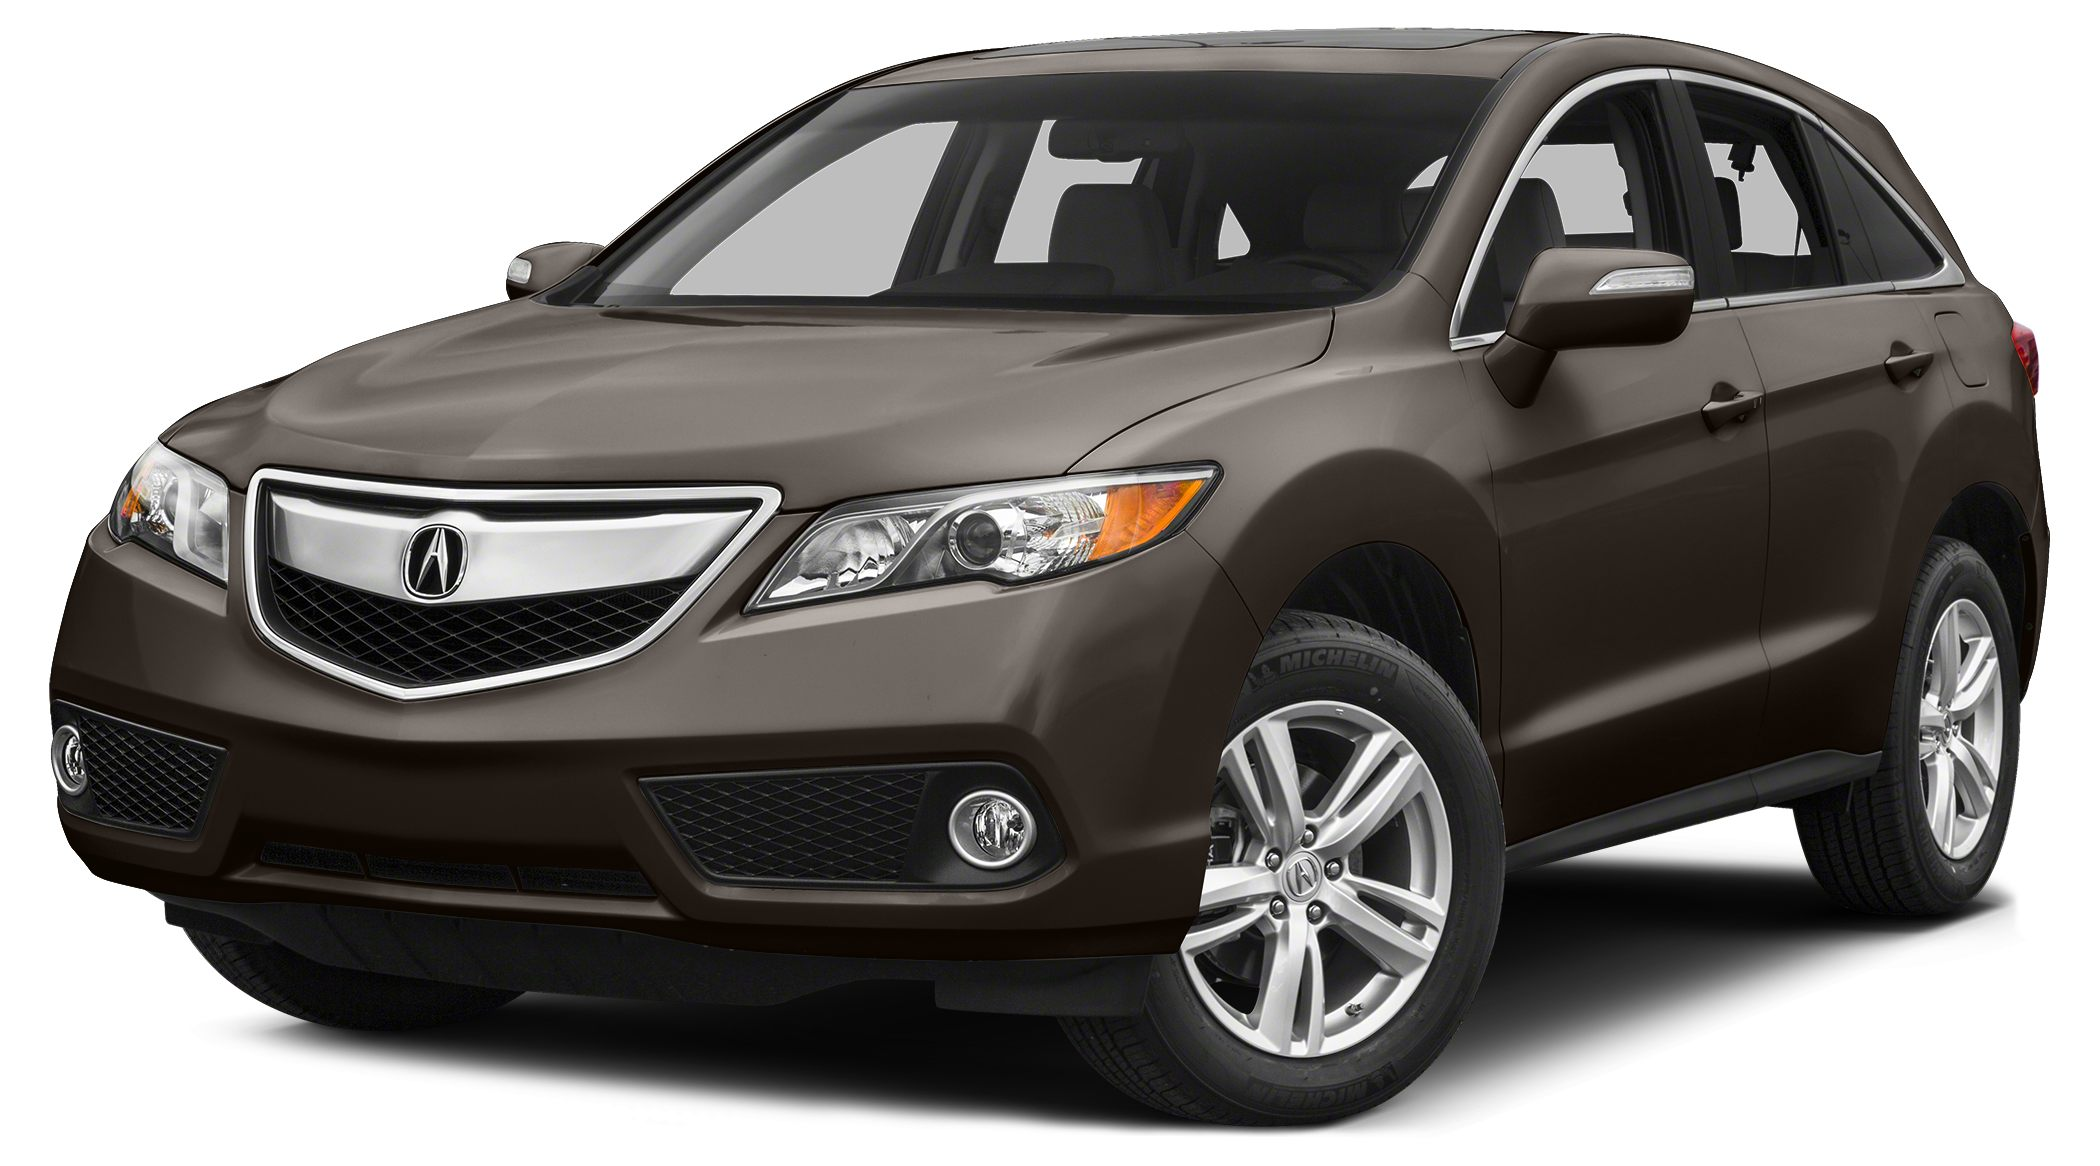 2015 Acura RDX Technology Miles 83Color Kona Coffee Metallic Stock A027297 VIN 5J8TB4H57FL02